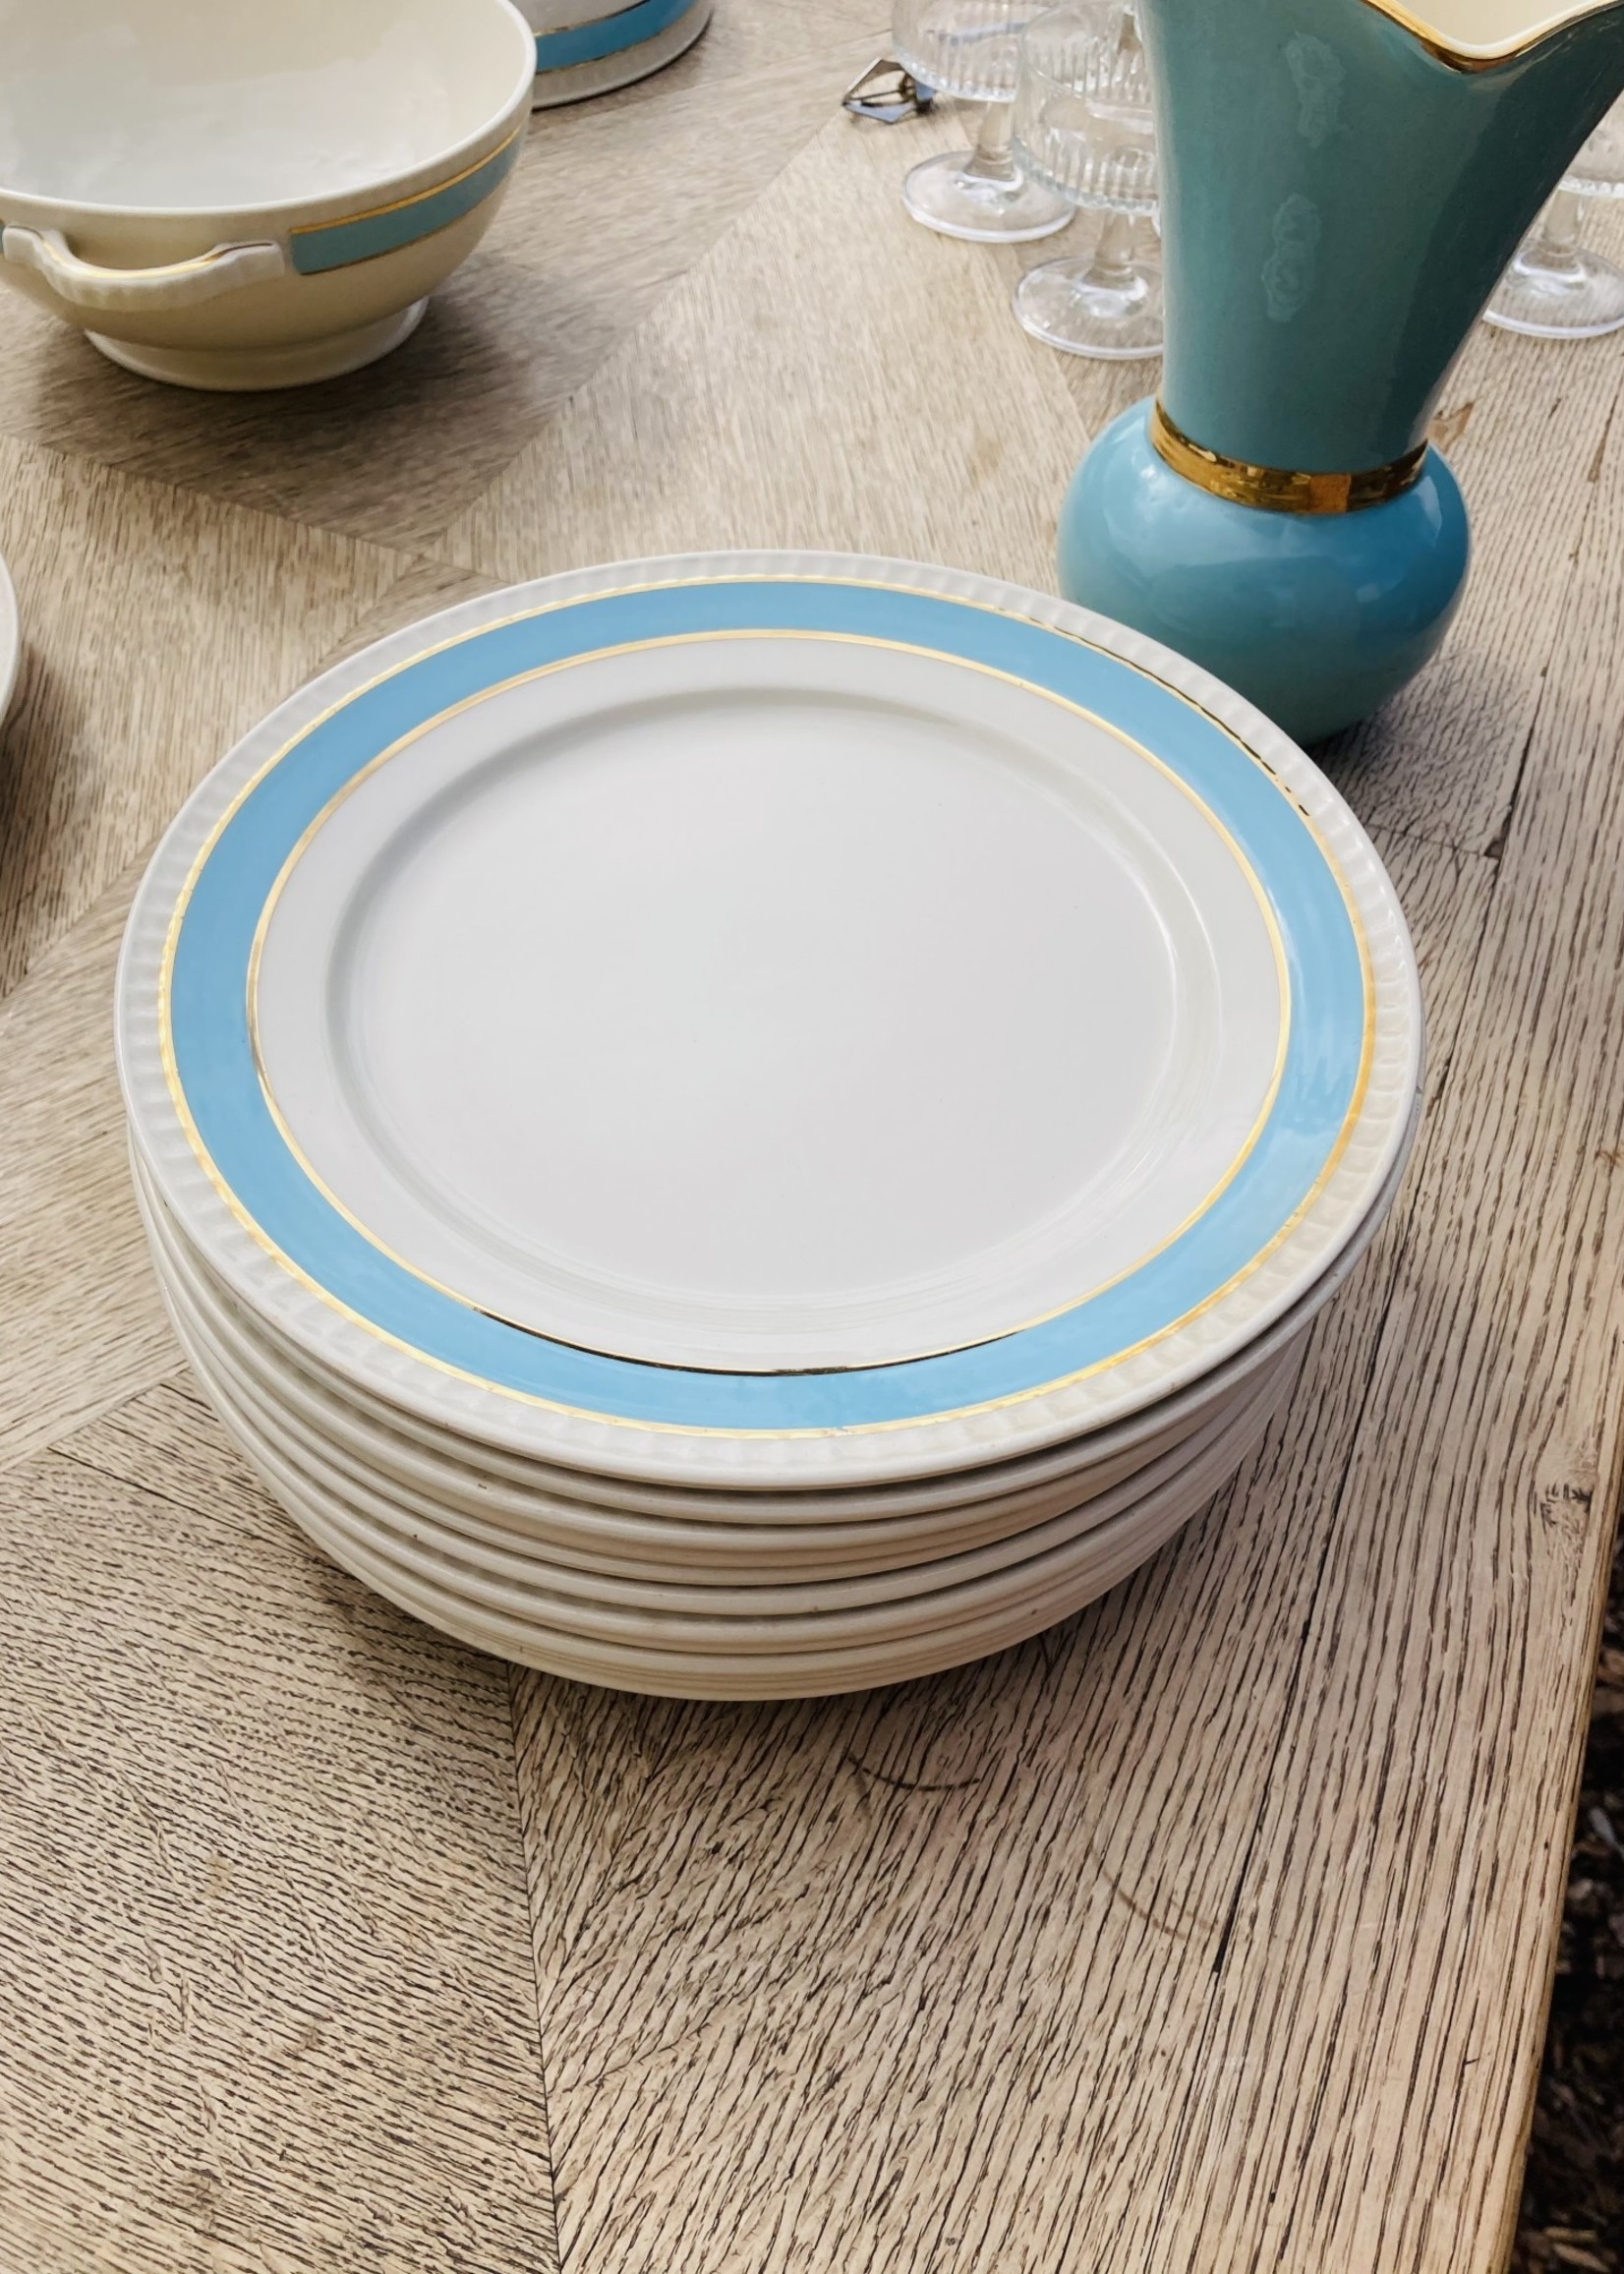 Boch Small plates with light blue border and 2 golden lines